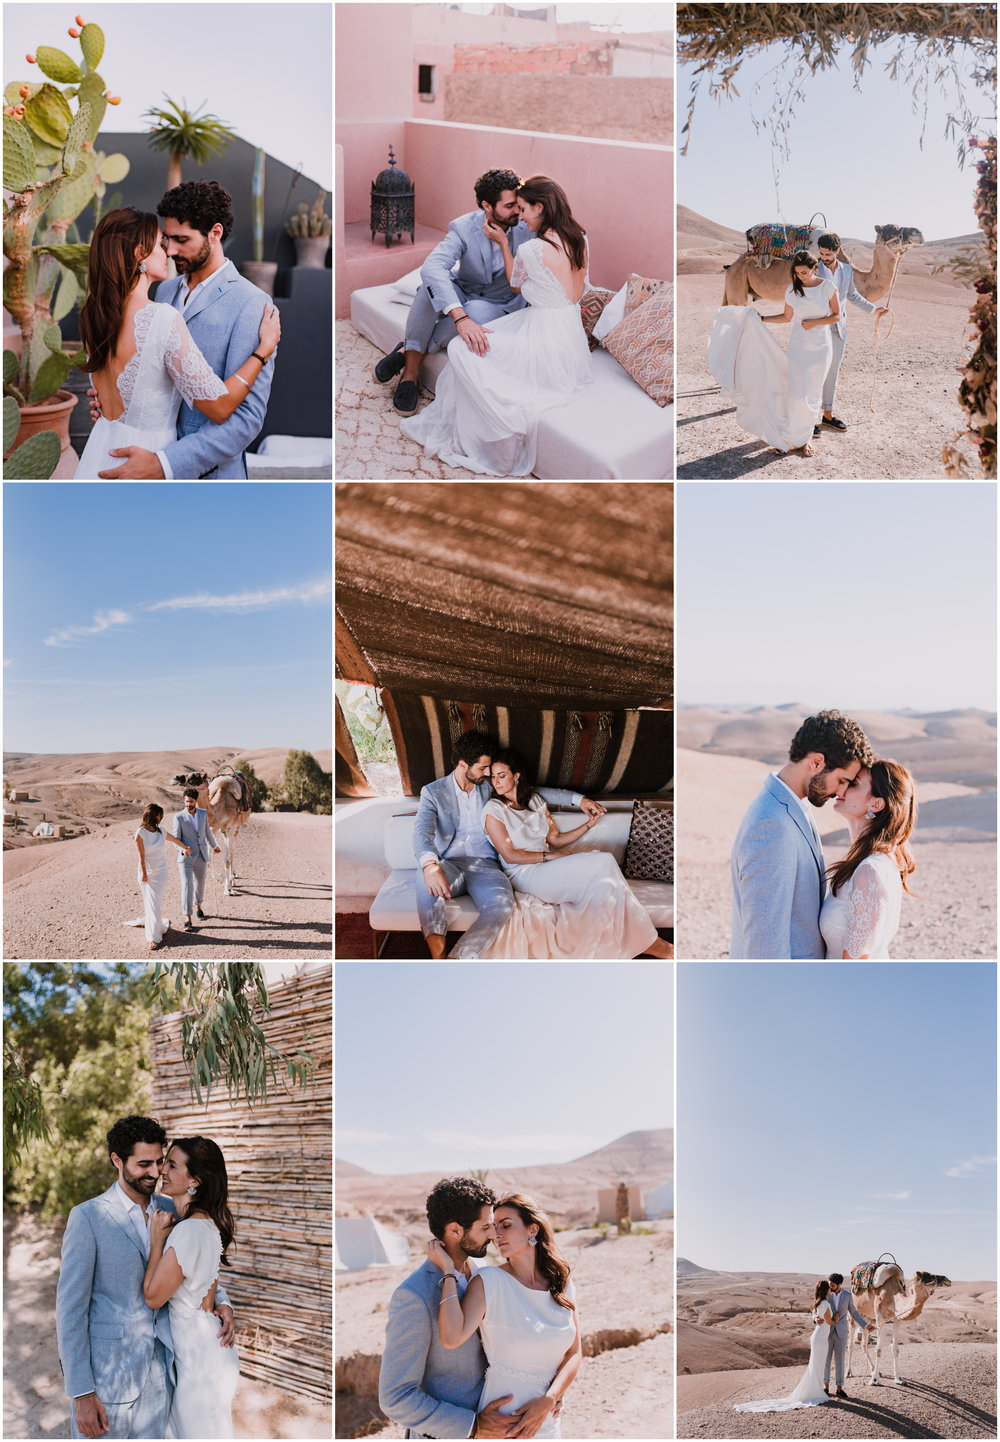 Morocco elopement wedding.jpg